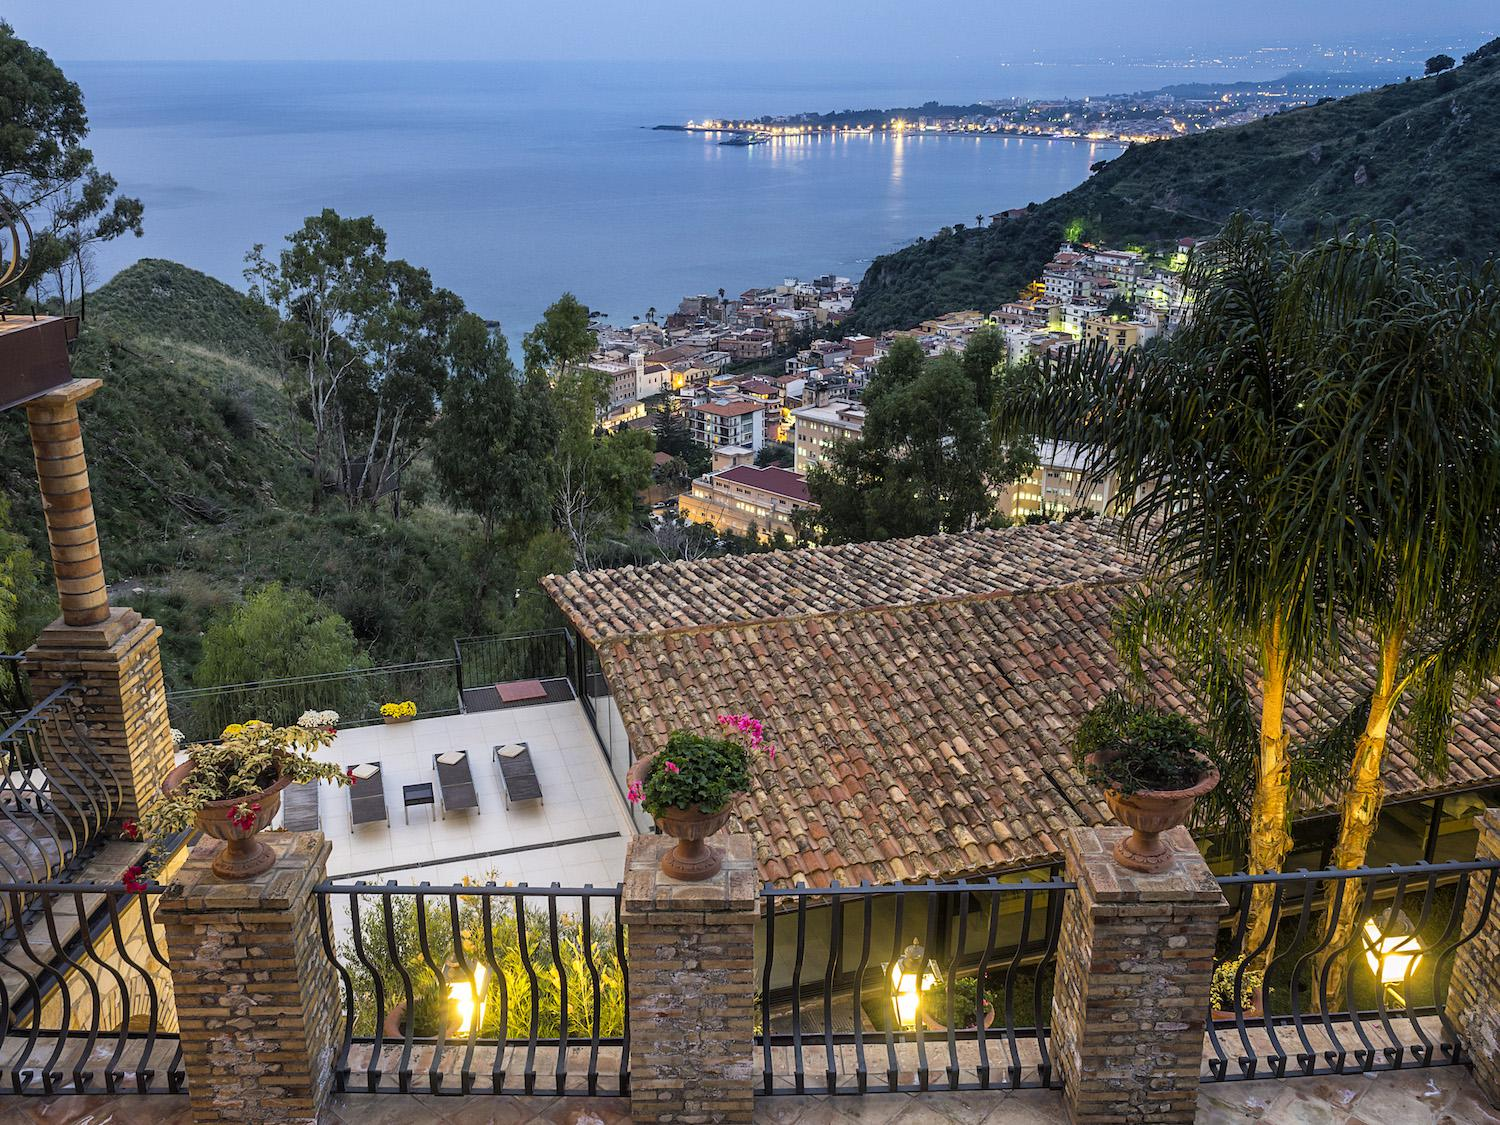 Position - Apartments in Taormina - Luxury Residence Taormina - Room rent- Holiday homes - Sea Residence